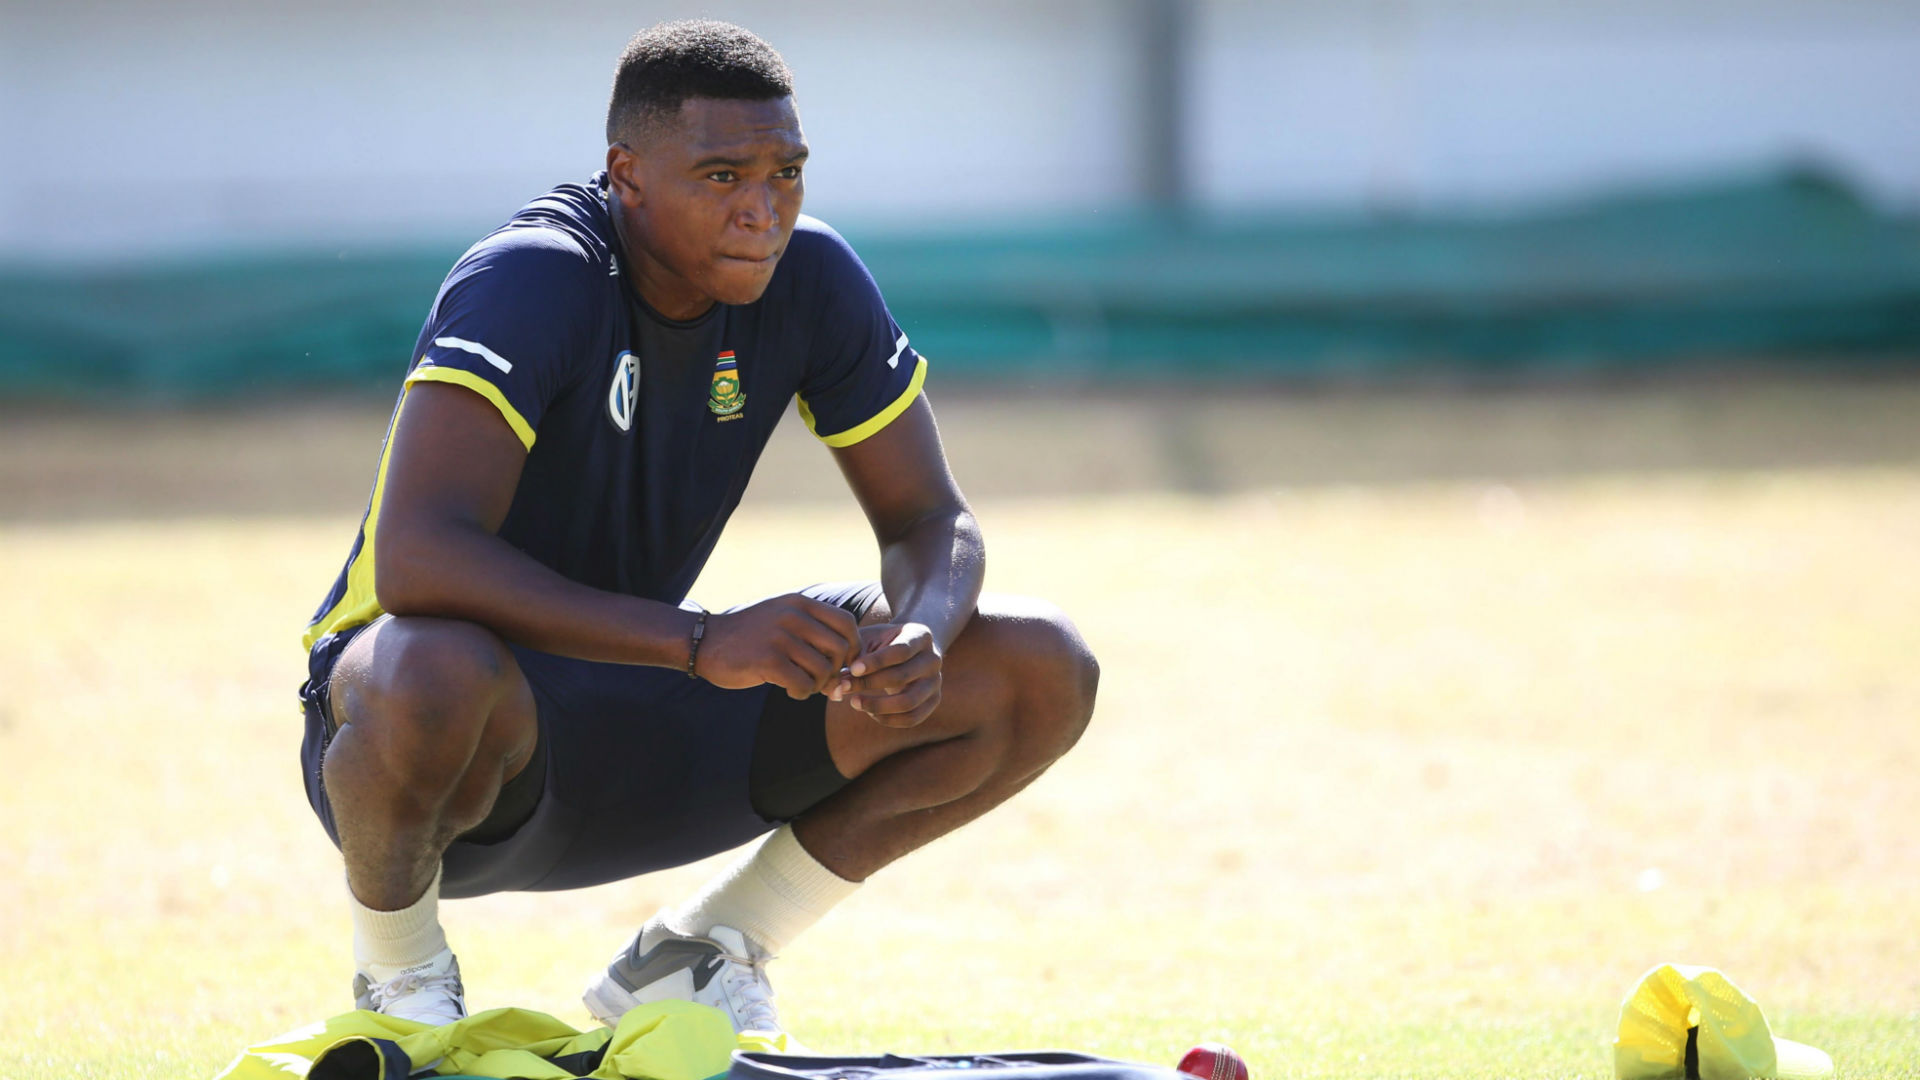 Lungi Ngidi and Anrich Nortje will play no part in the IPL due to side and shoulder injuries respectively.